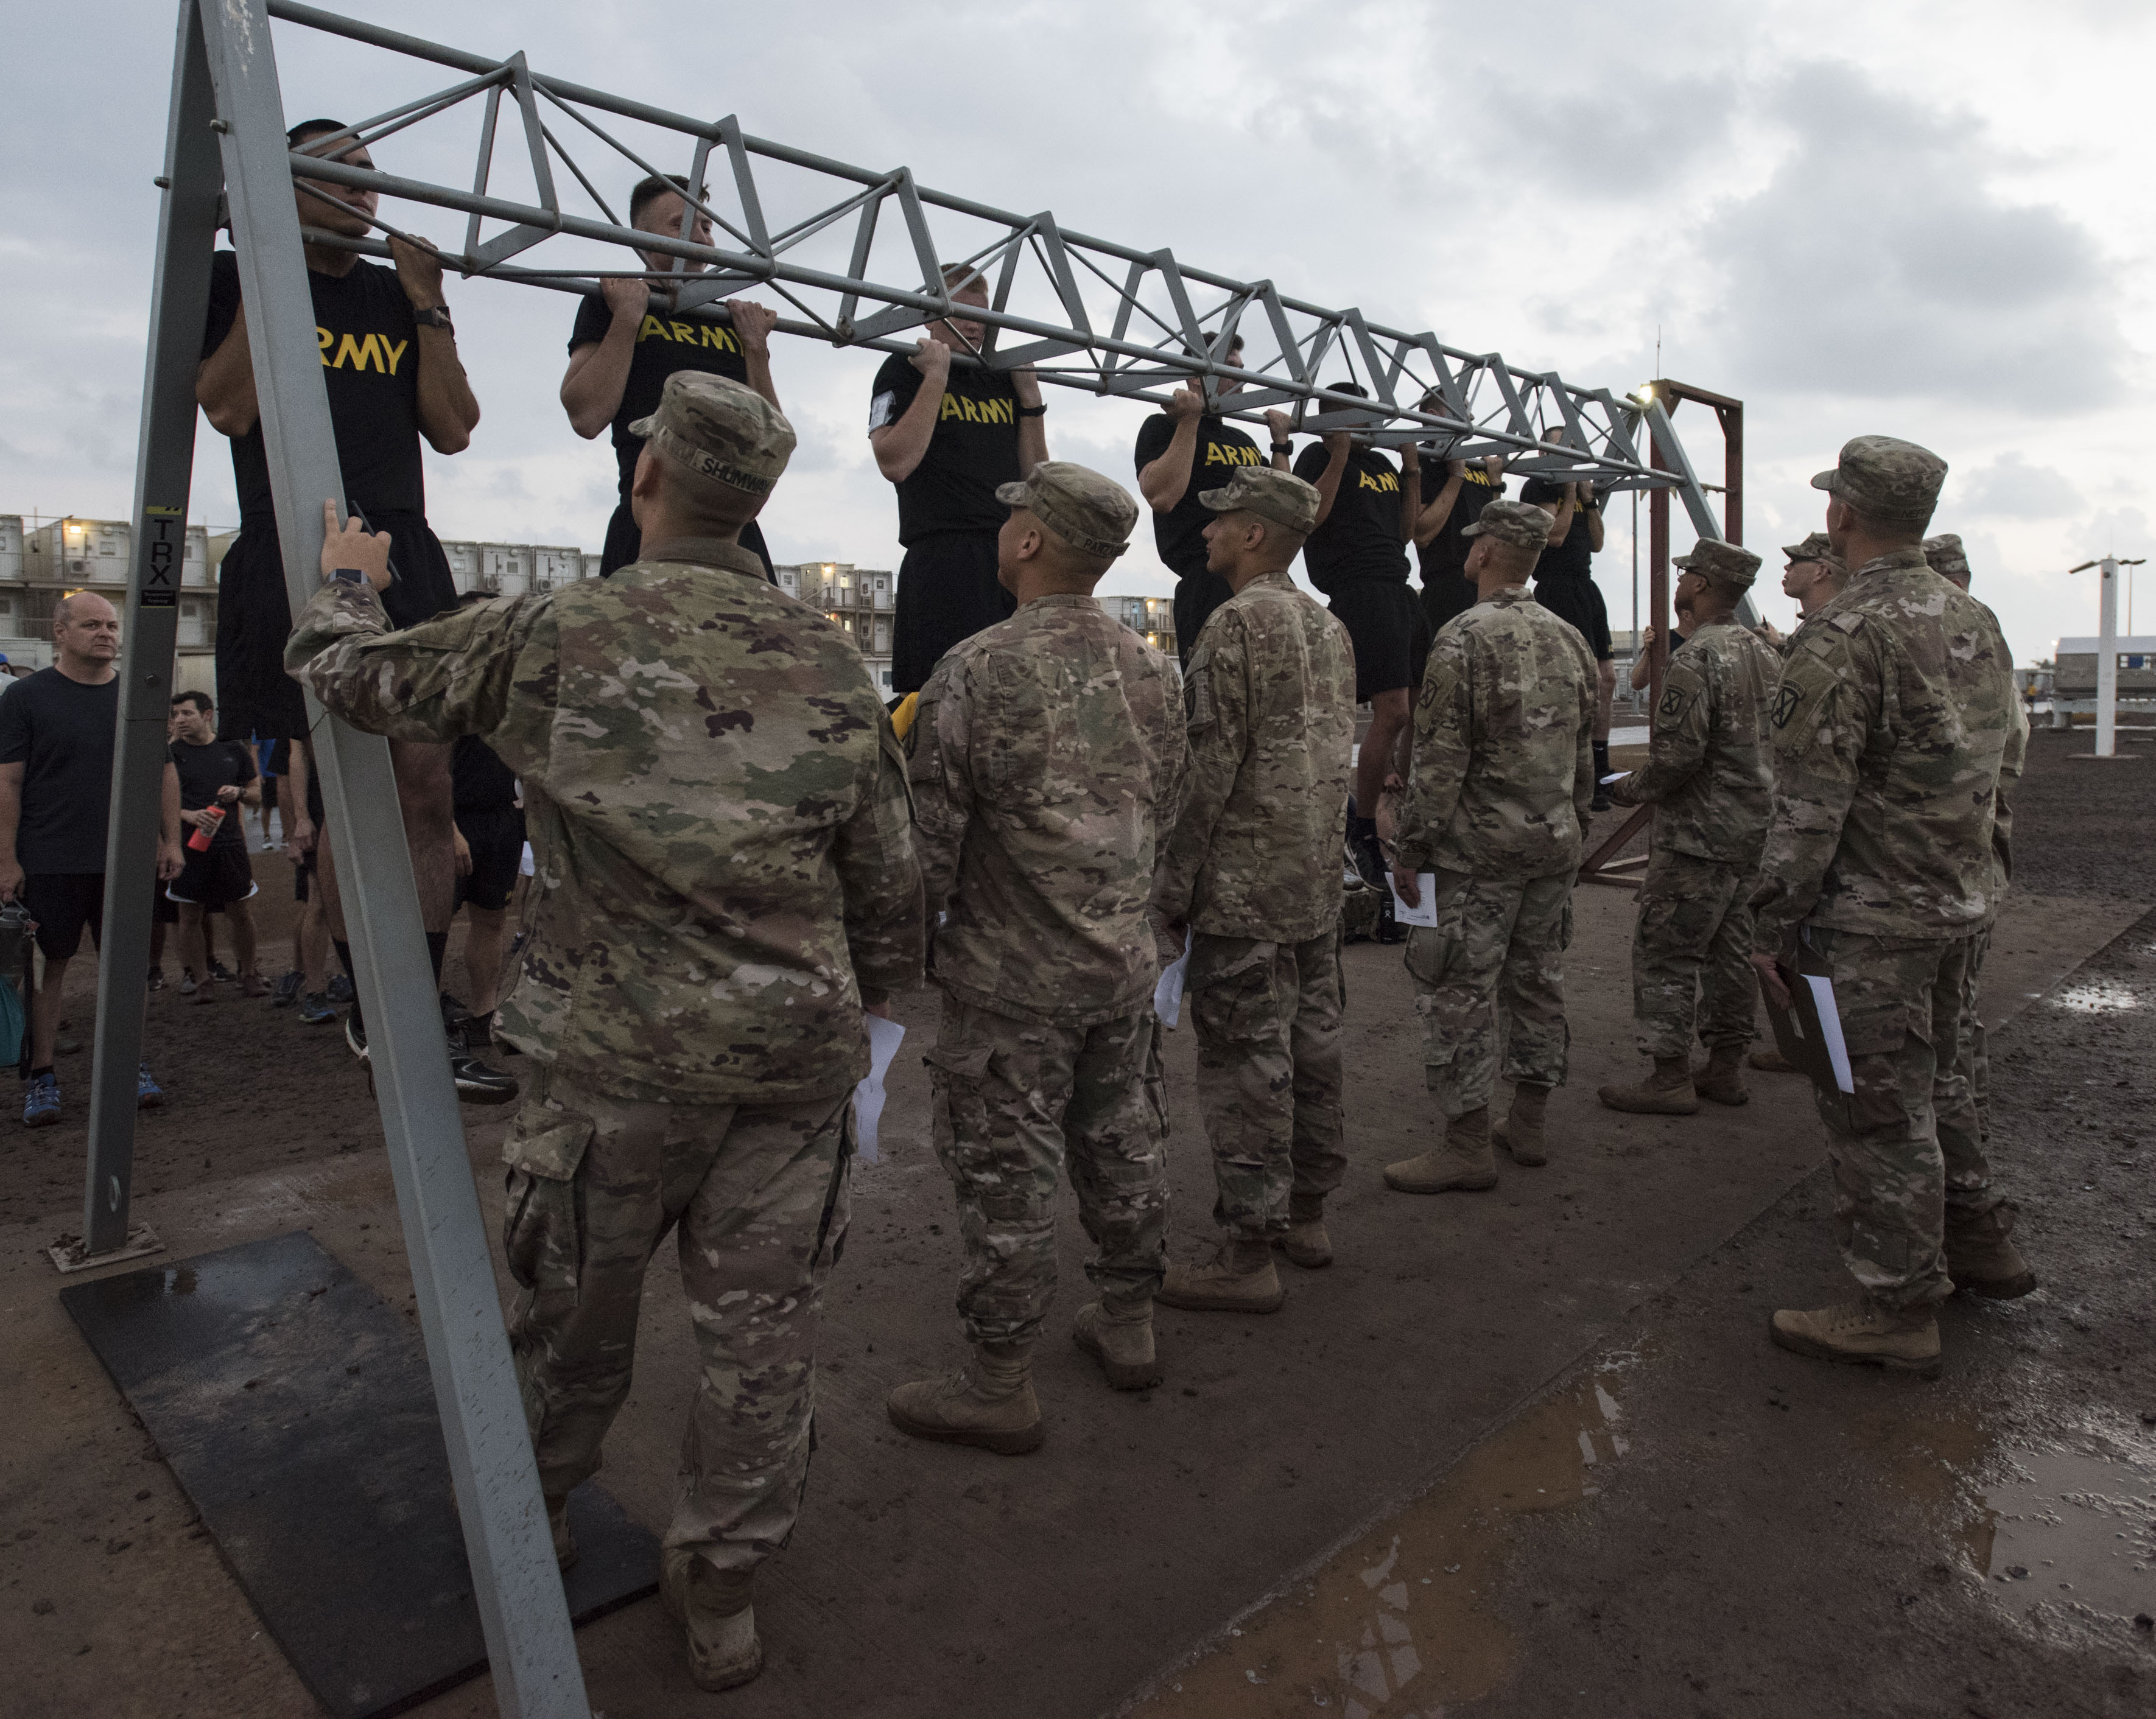 U.S. service members assigned to Combined Joint Task Force-Horn of Africa complete a physical fitness test as part of the competition to earn the German Armed Forces Proficiency Badge (GAFPB), a decoration of the Armed Forces of the Federal Republic of Germany, at Camp Lemonnier, Djibouti, Nov. 27, 2017. Competitors must complete a physical fitness test, uniformed swim, weapons qualification, ruck march, first aid course and chemical warfare course to be awarded the GAFPB, one of the few foreign allied military awards that U.S. service members are authorized to wear. (U.S. Air National Guard photo by Staff Sgt. Allyson L. Manners)